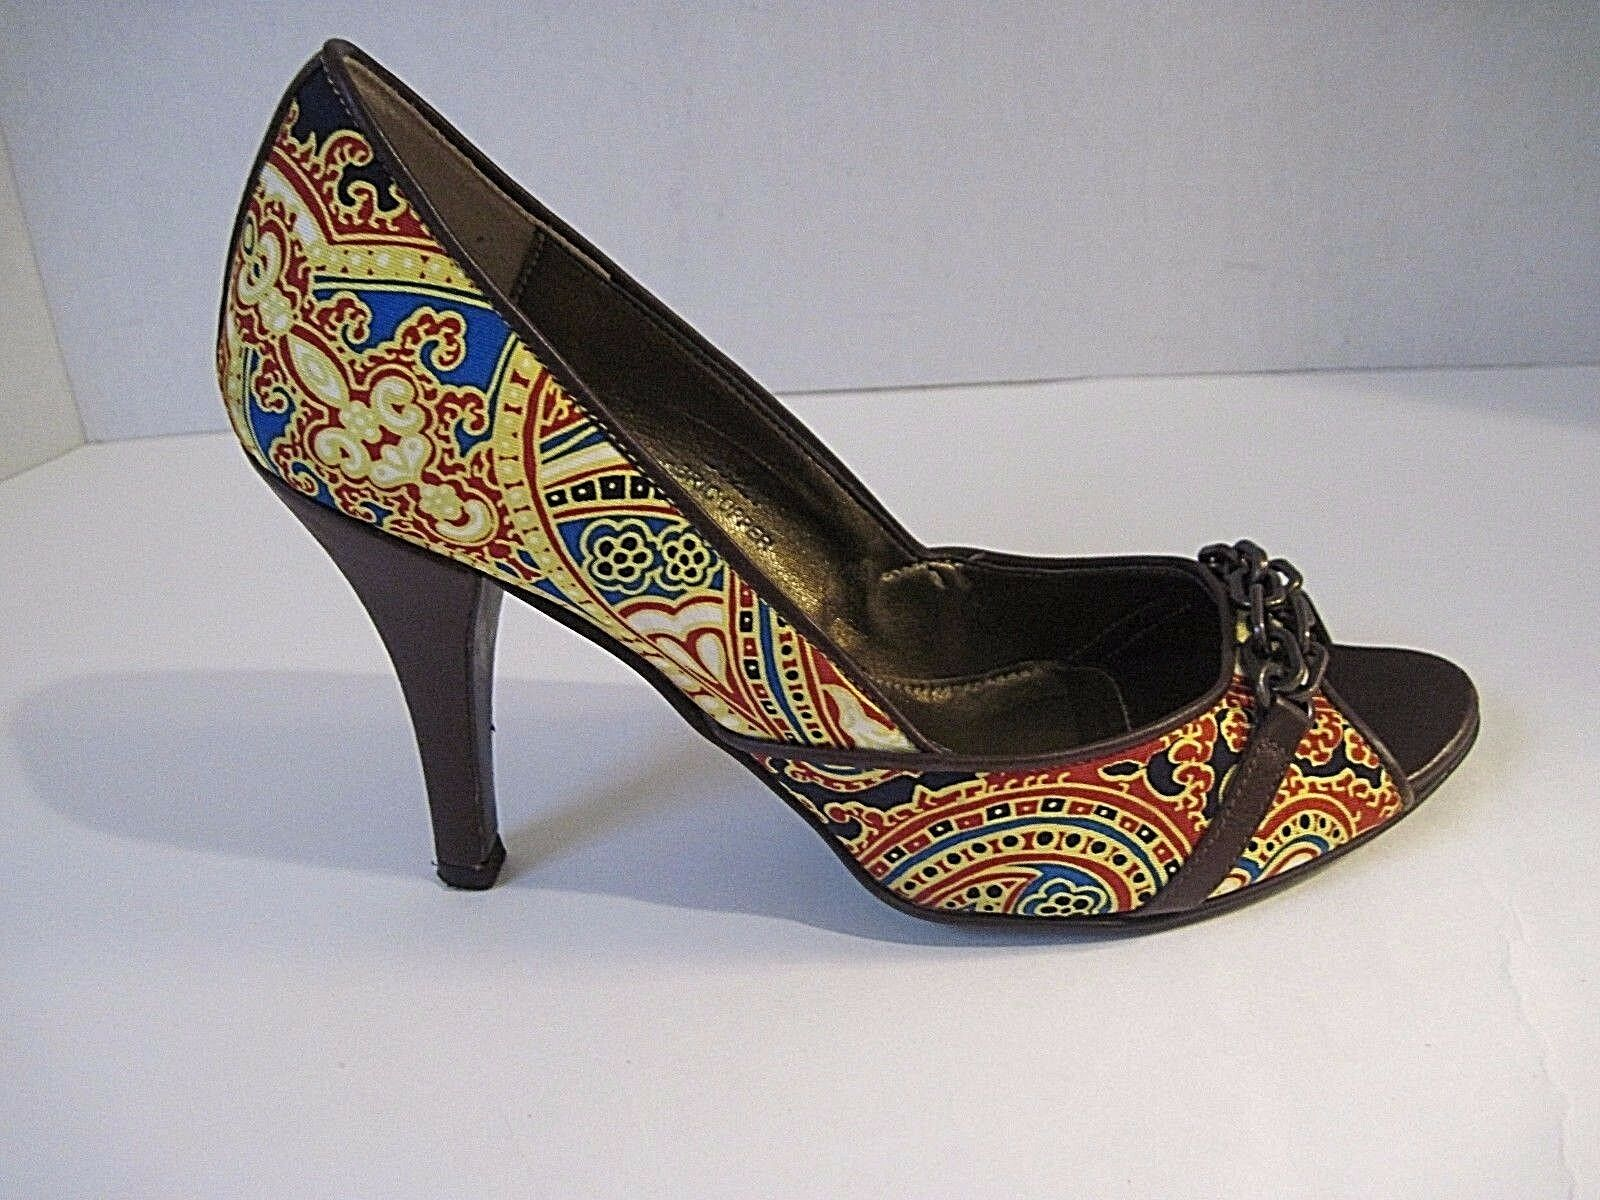 J.CREW Paisley Fabric Front Chain Heel Made In Italy #86221  Size 6  268